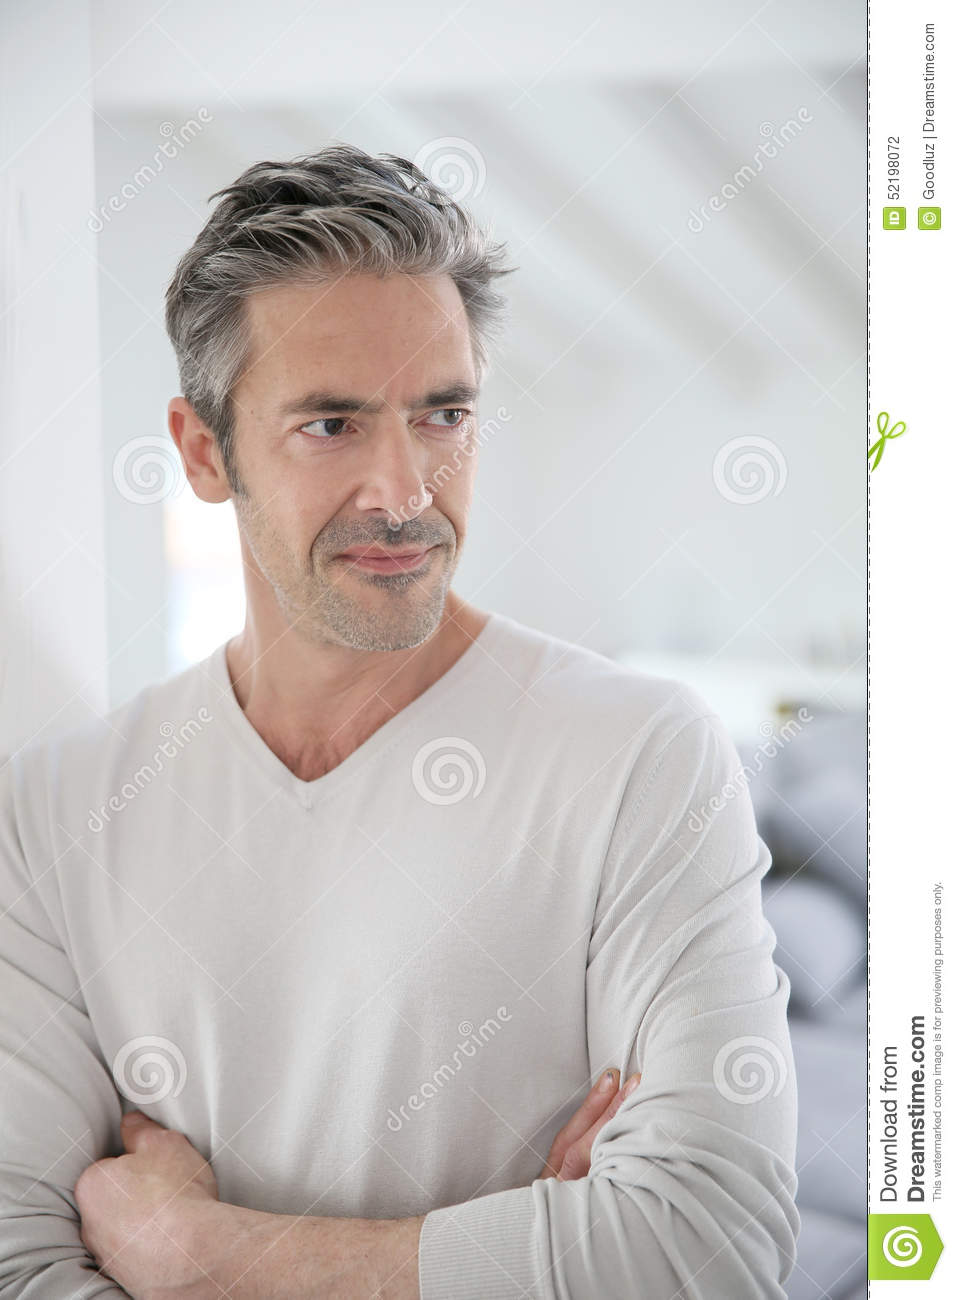 Middle-aged man looking for man younger 50 for sex